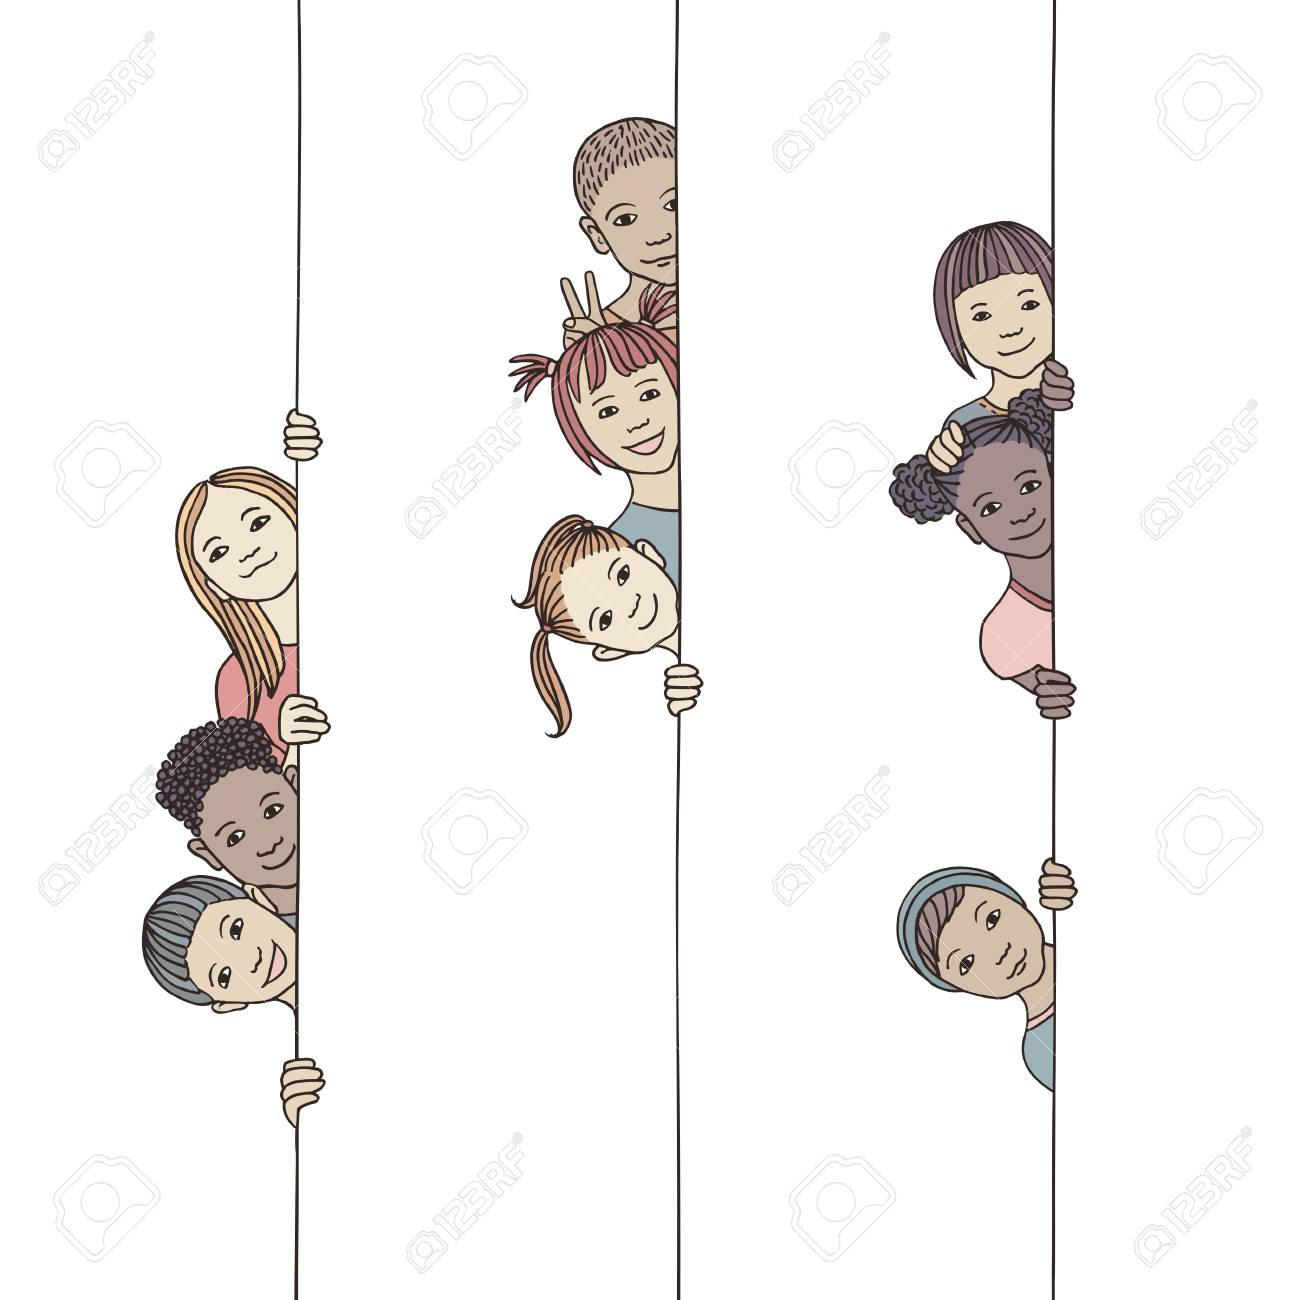 Hand drawn illustration of young and diverse children looking around the corner - 117796654